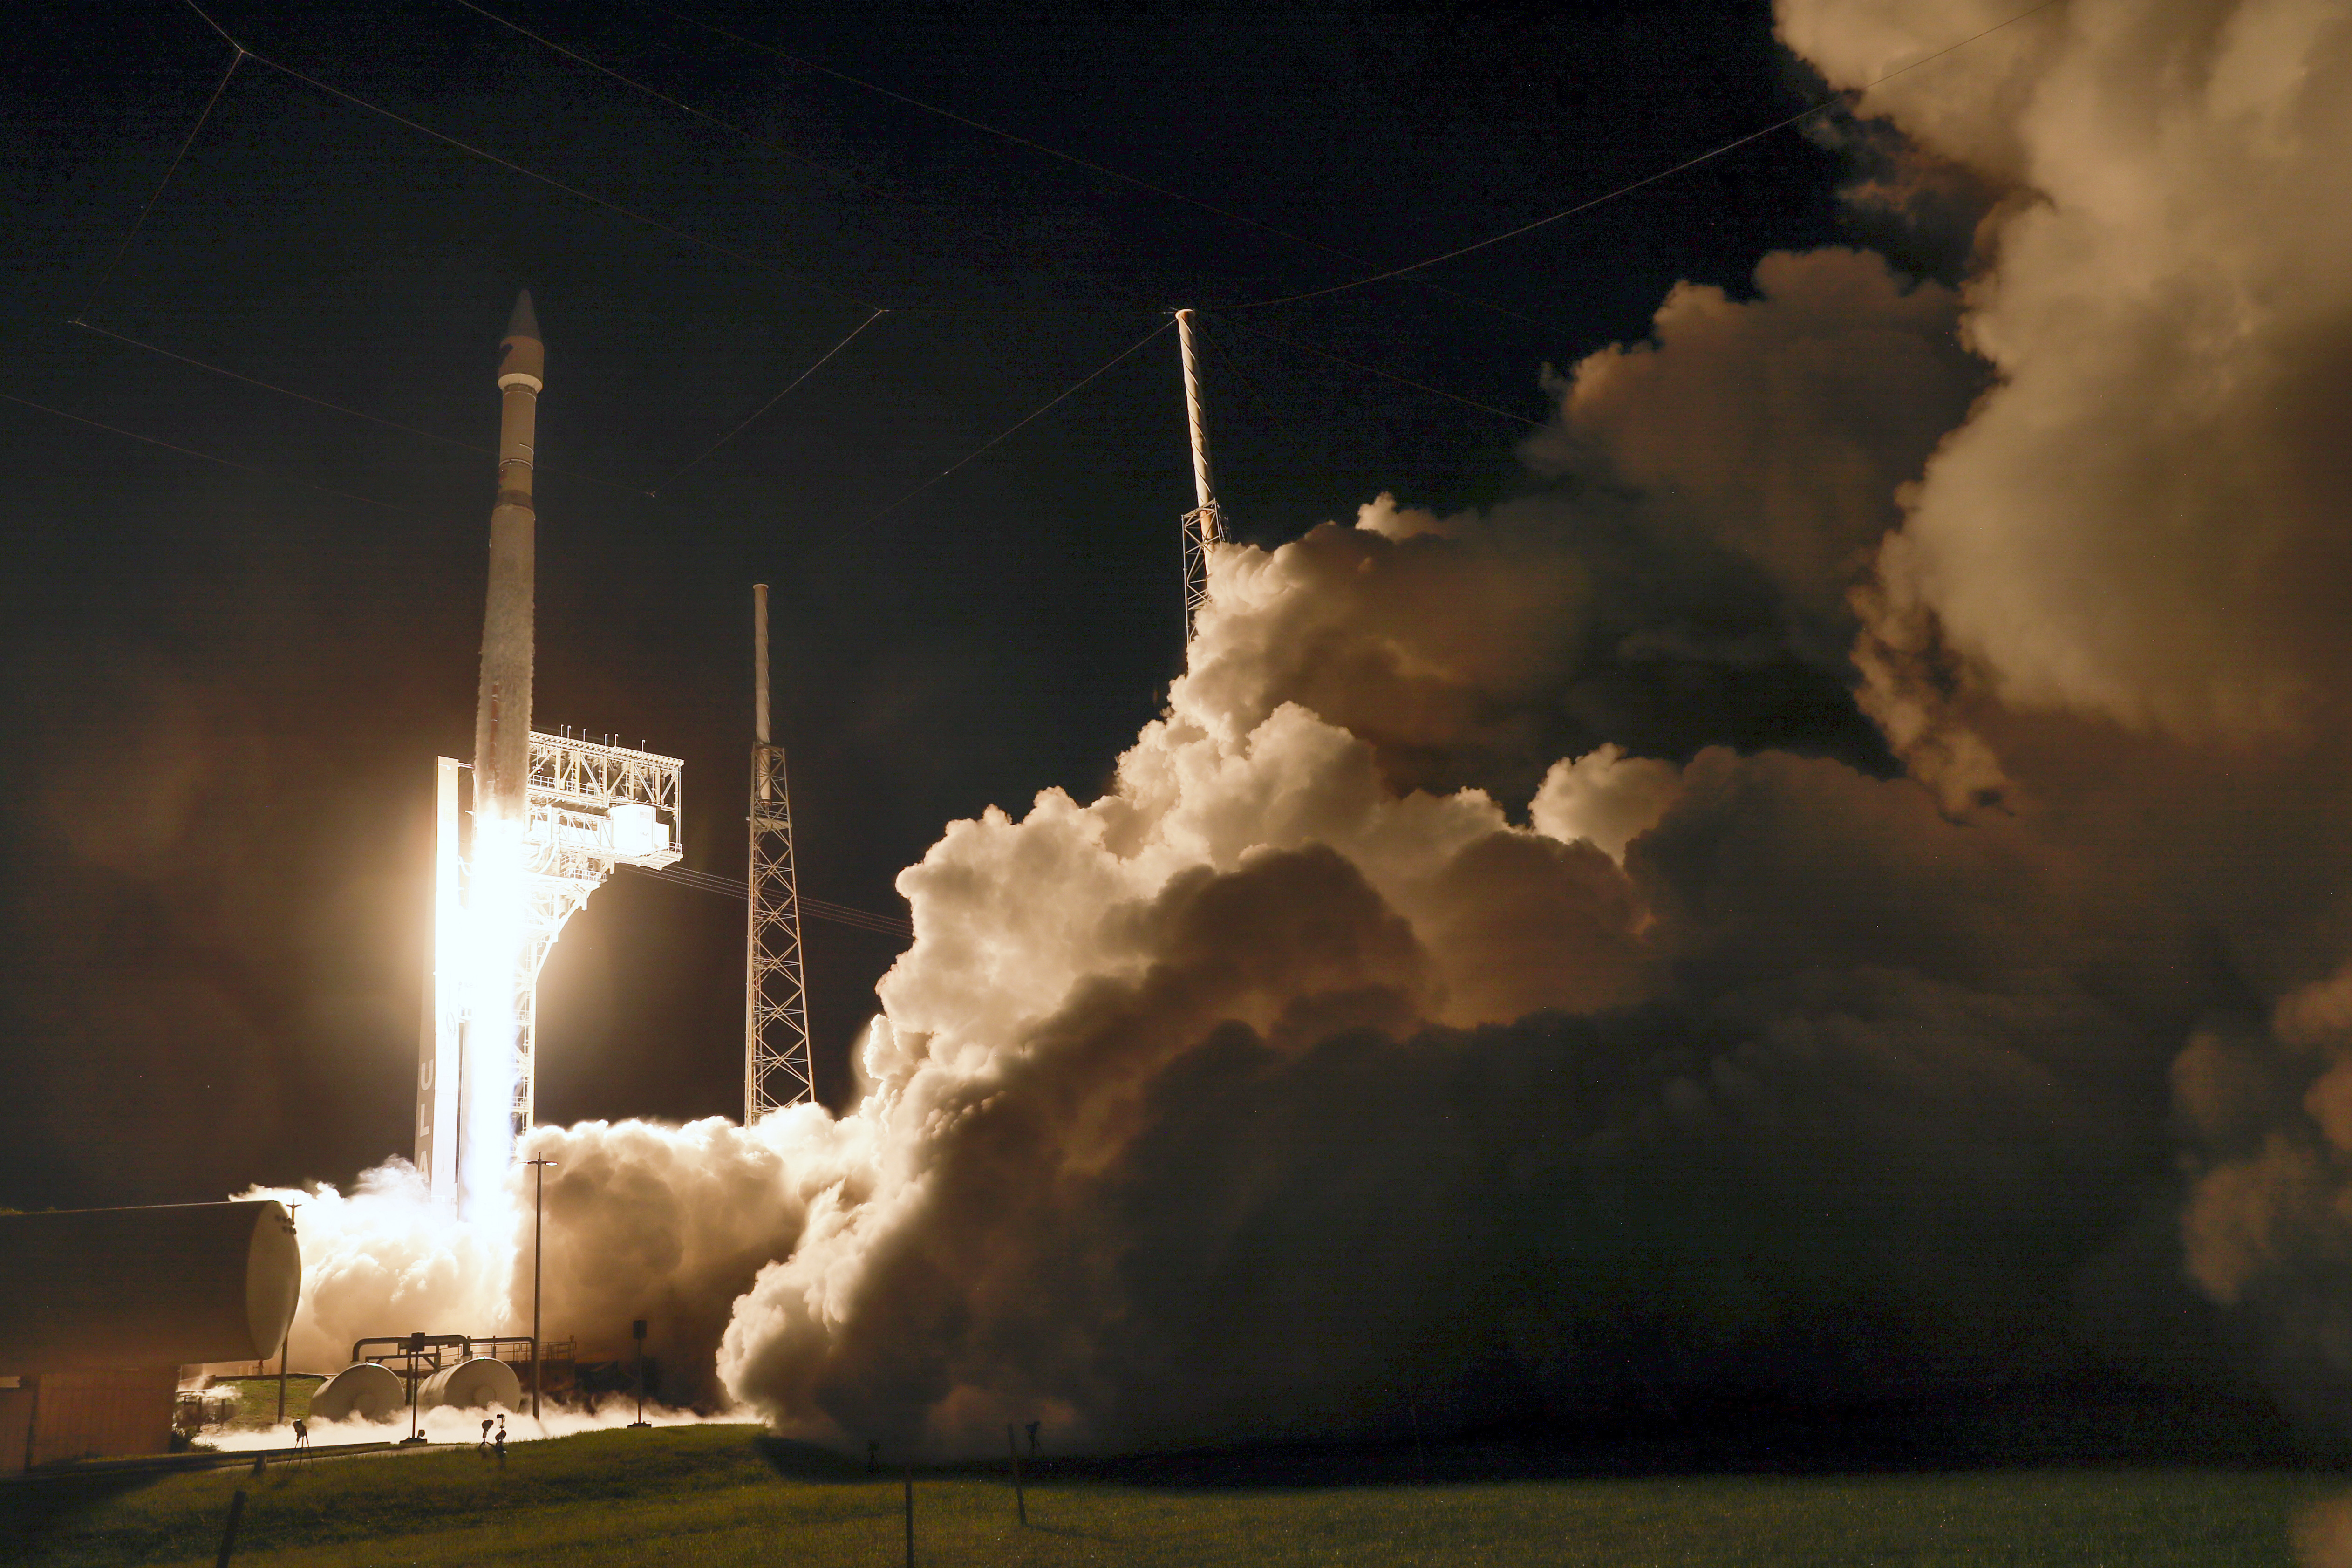 A United Launch Alliance Atlas V rocket carrying the Lucy spacecraft lifts off at the Cape Canaveral Space Force Station.